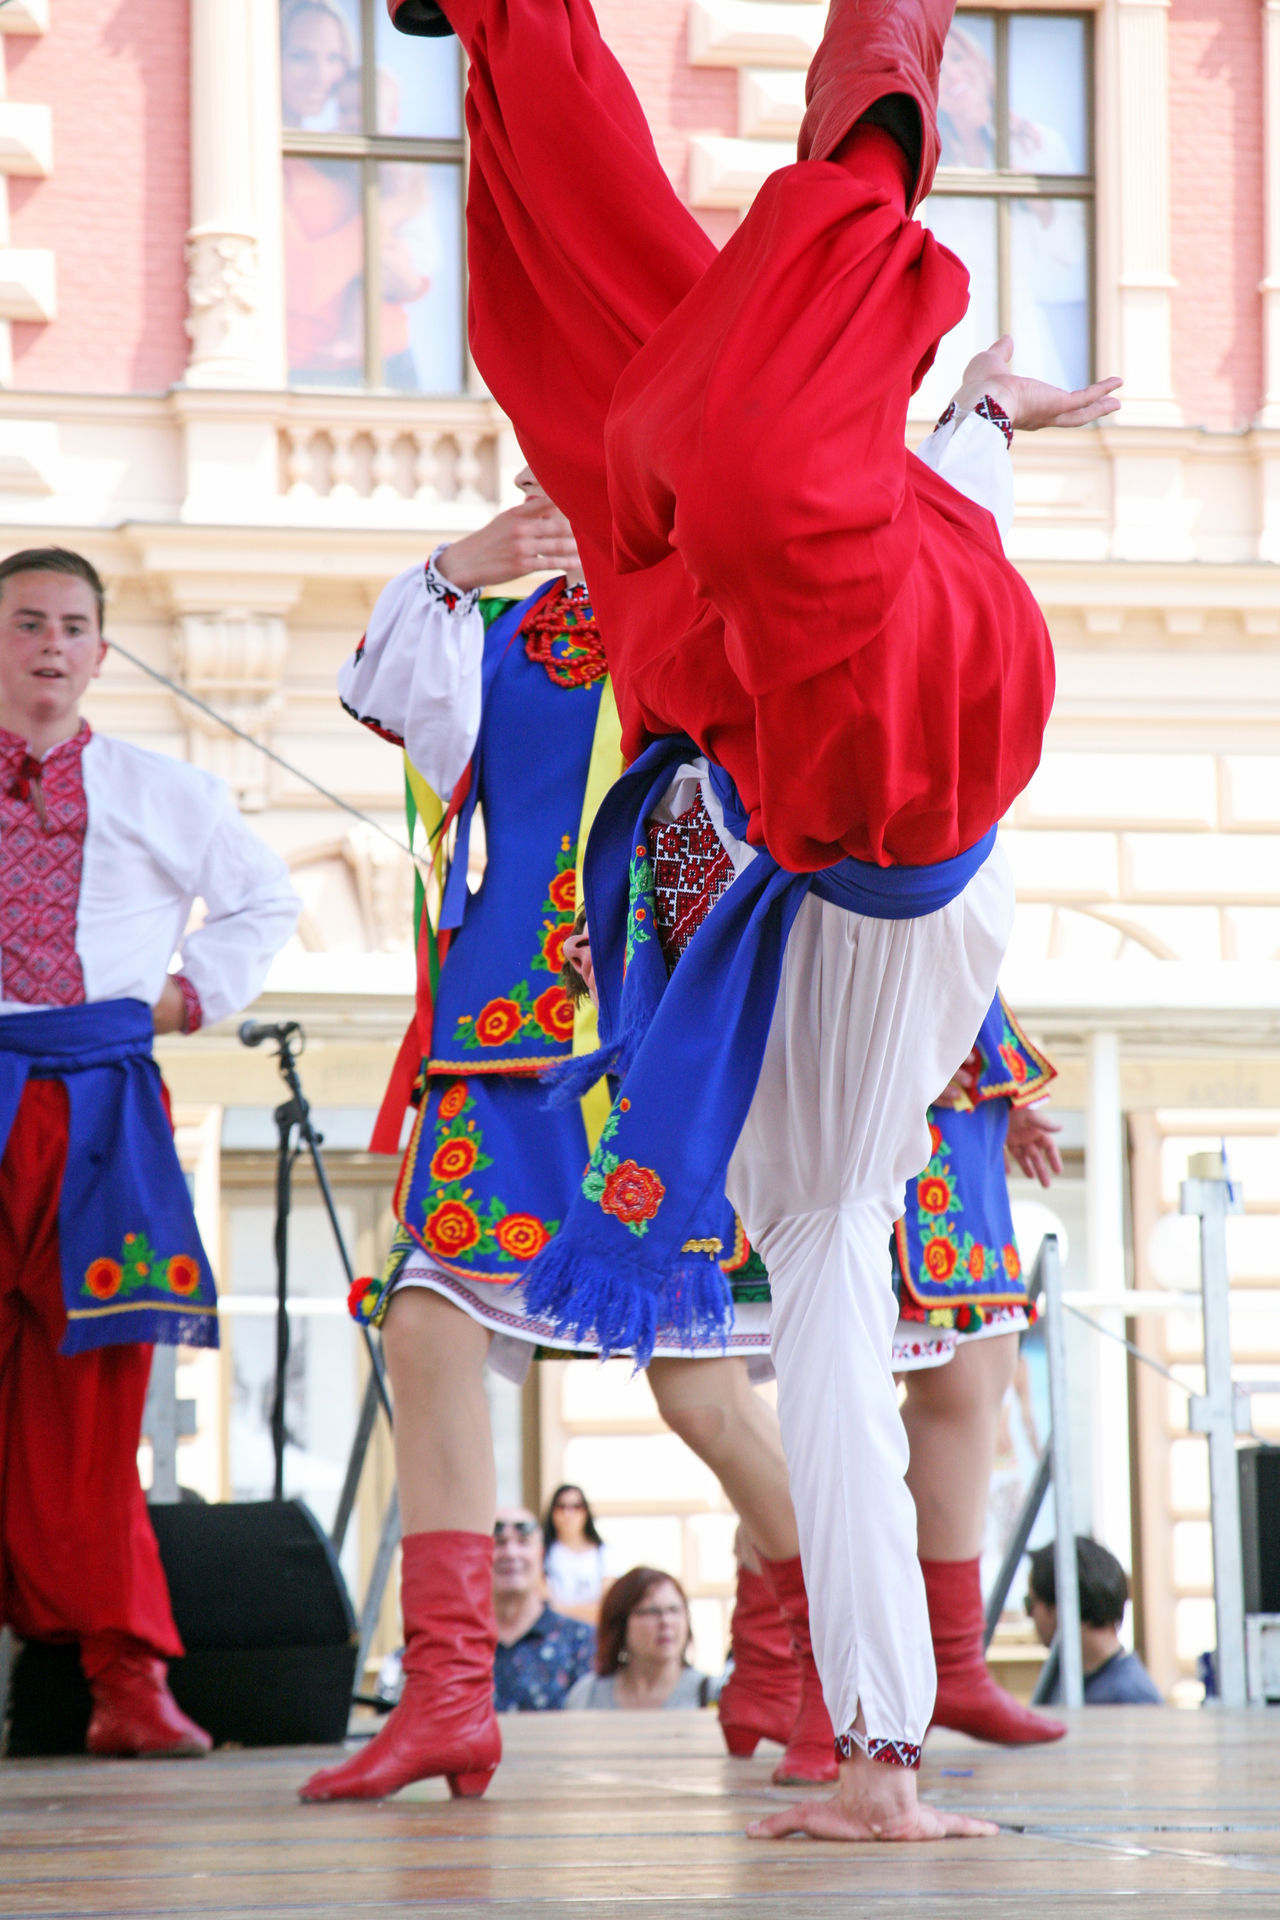 International Folklore Festival,Zagreb,2016.,Canada,Vegreville(Alberta),Ukrain Sopilka,7 Canada City Life Cultures Dance Day Eu International Folklore Festival Outdoors Show Traditional Clothing Vegreville (Alberta) Ukrain Sopilka Zagreb, Croatia